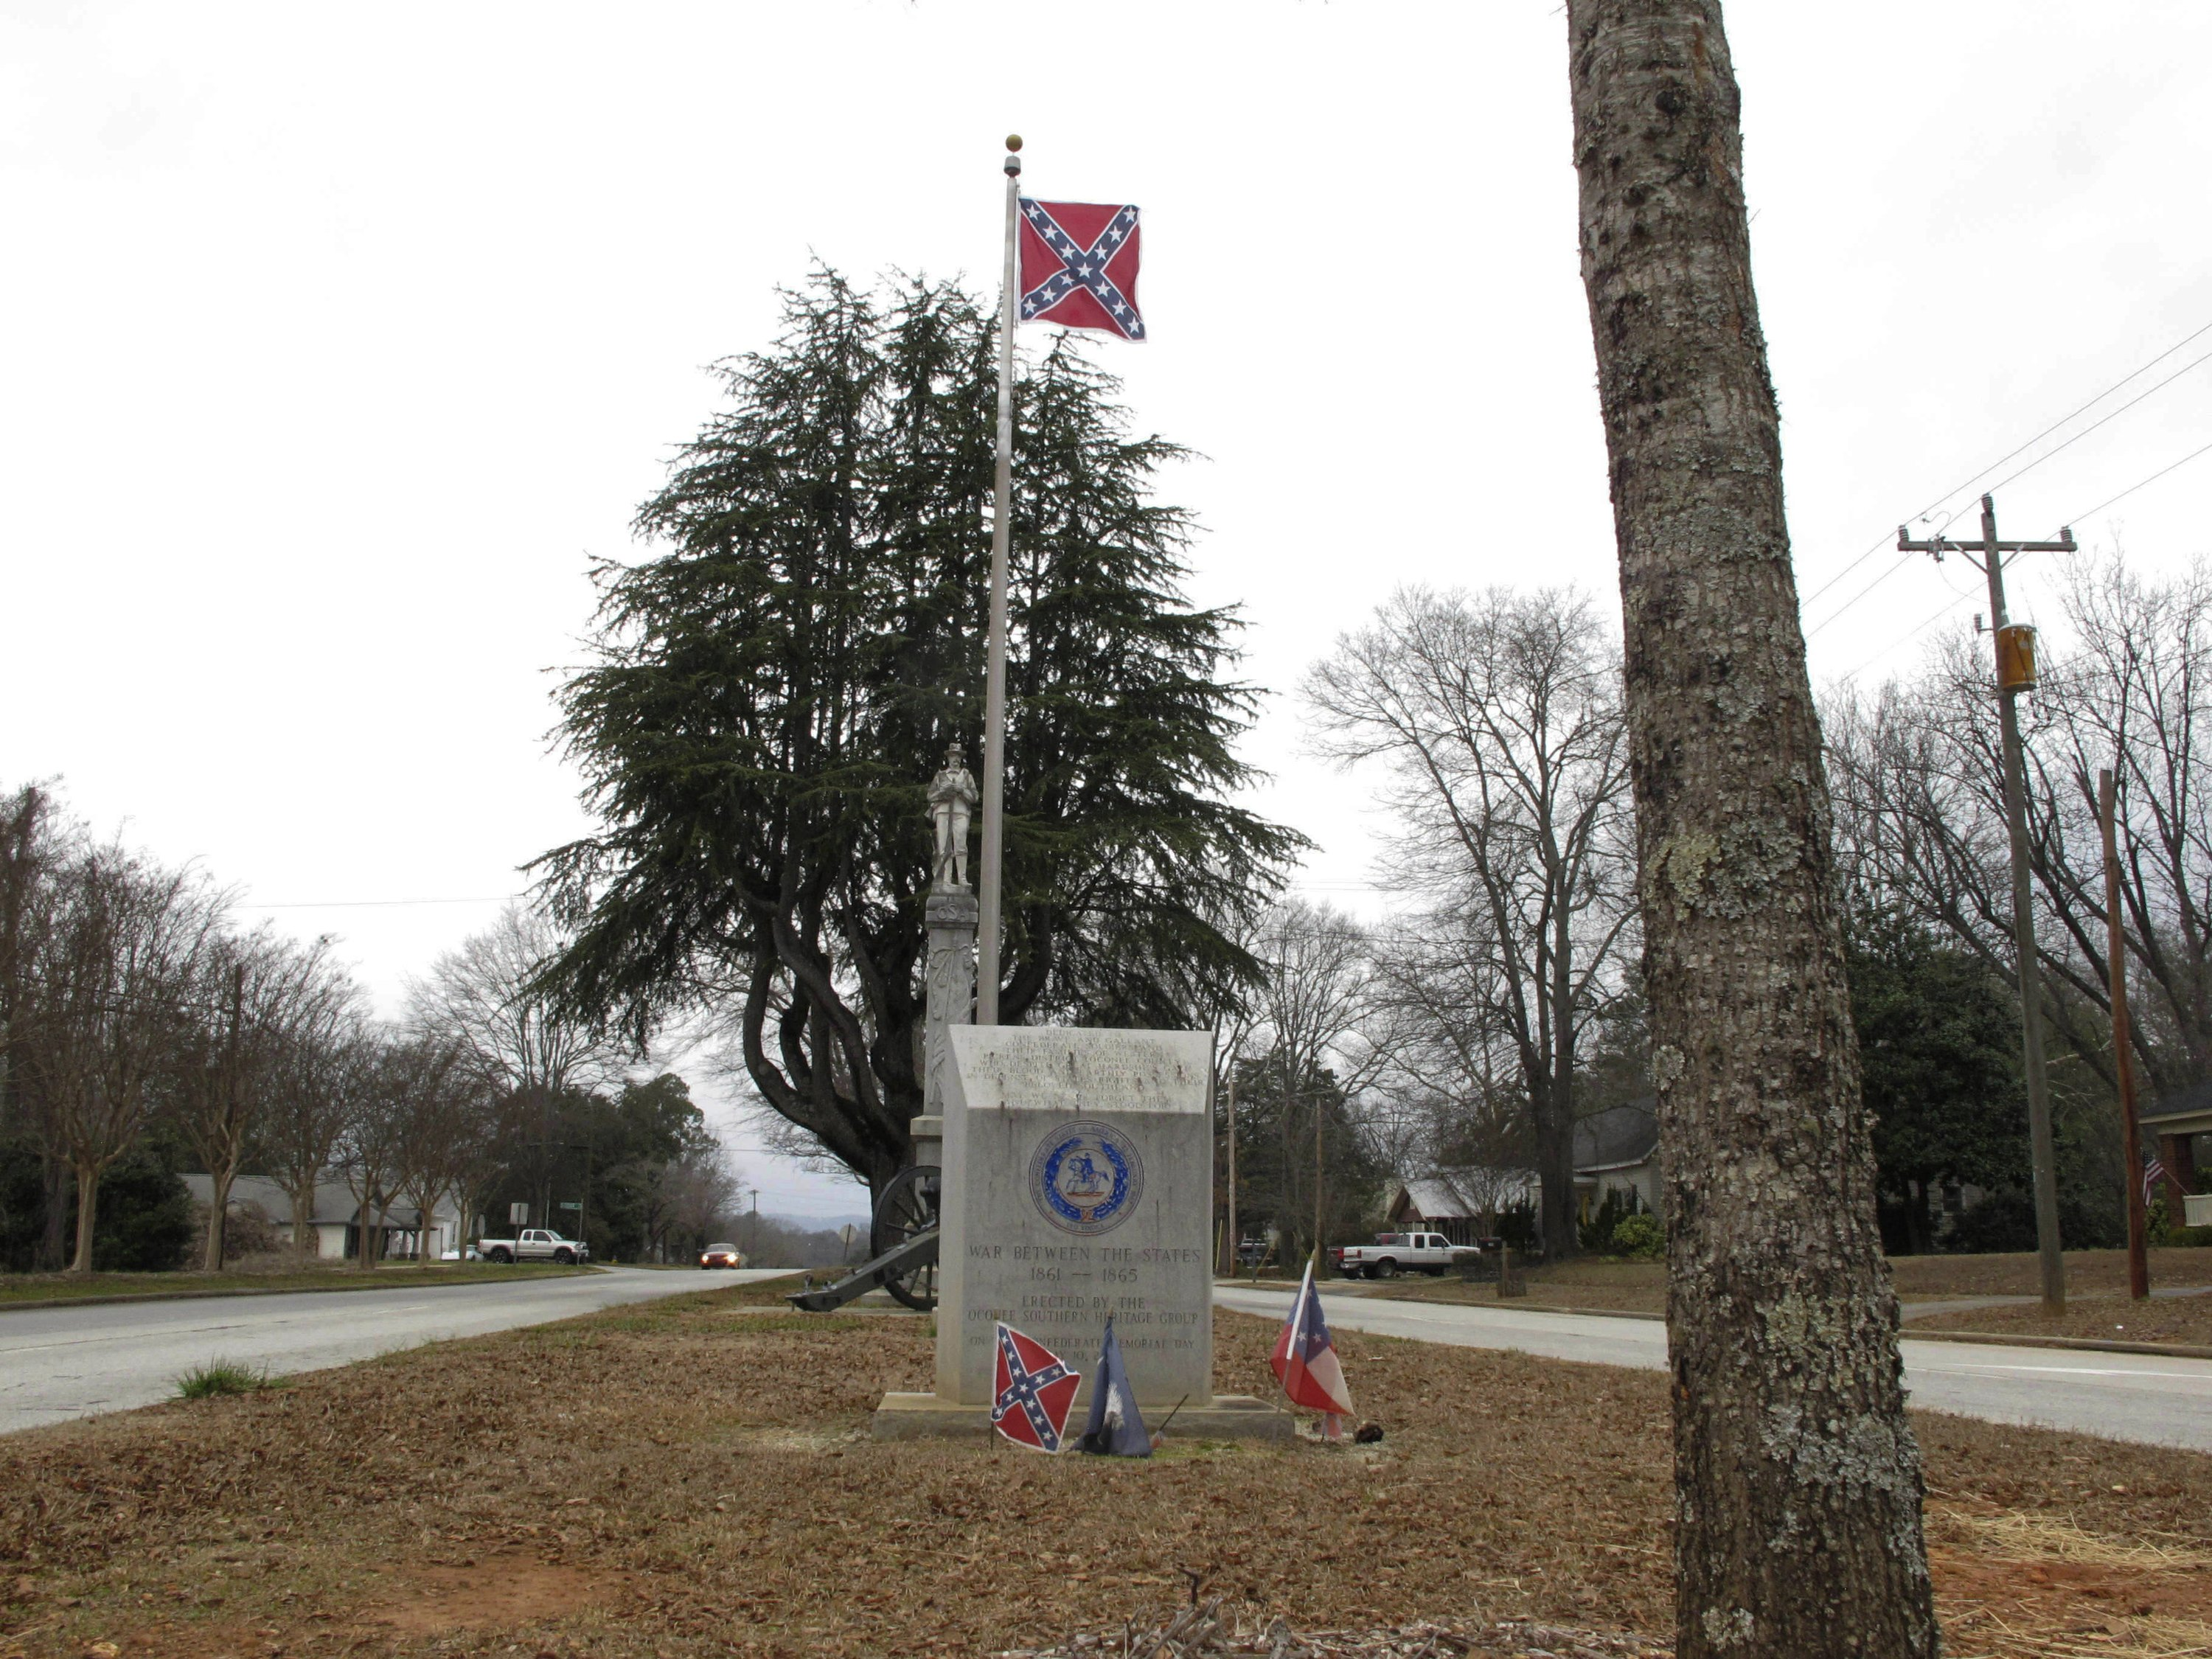 S. Carolina law makes it tough to lower Confederate flags